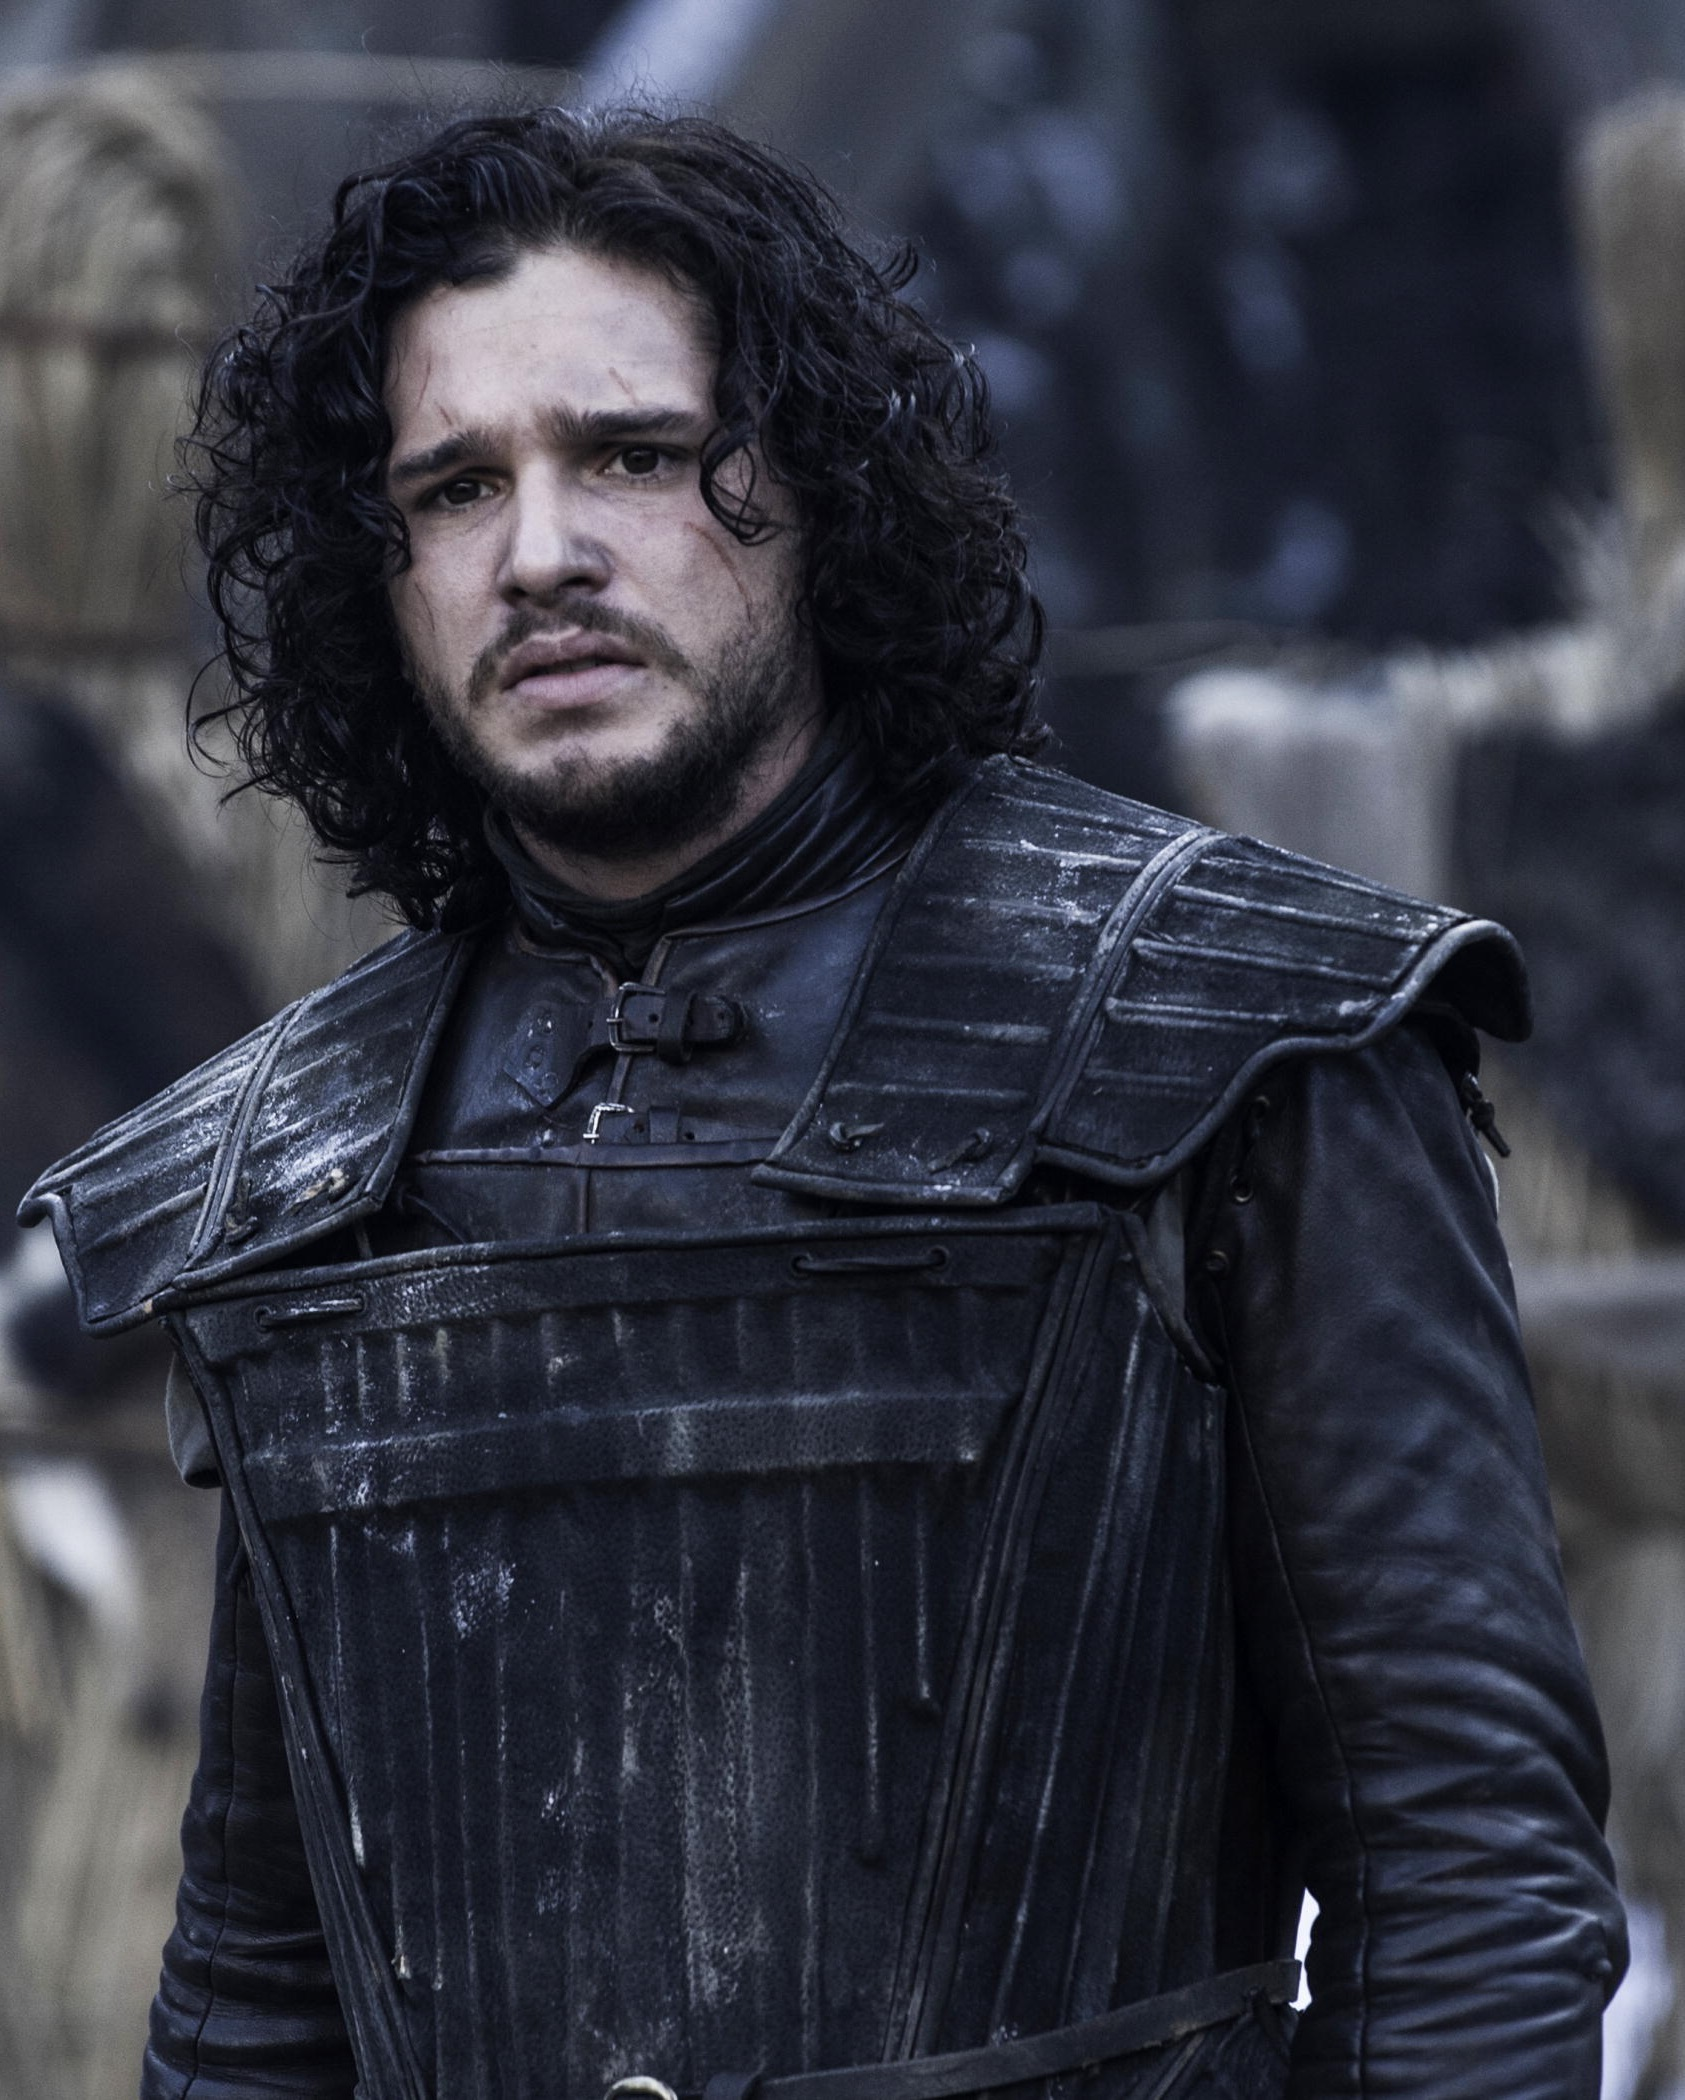 JON SNOW - Game of Thrones Wiki